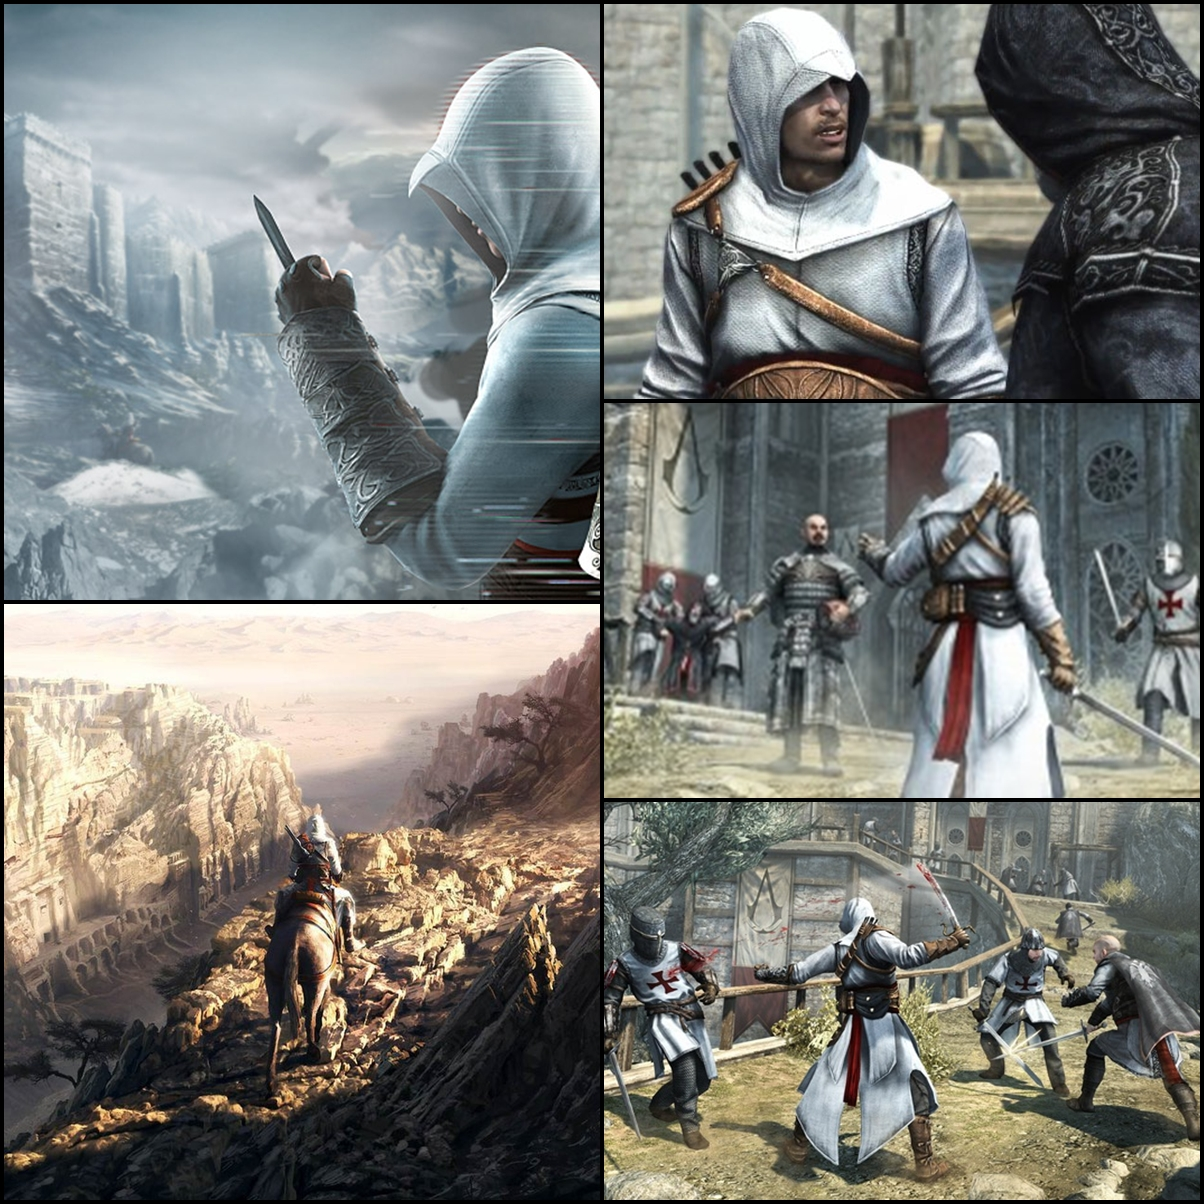 assassin's creed images altair hd wallpaper and background photos